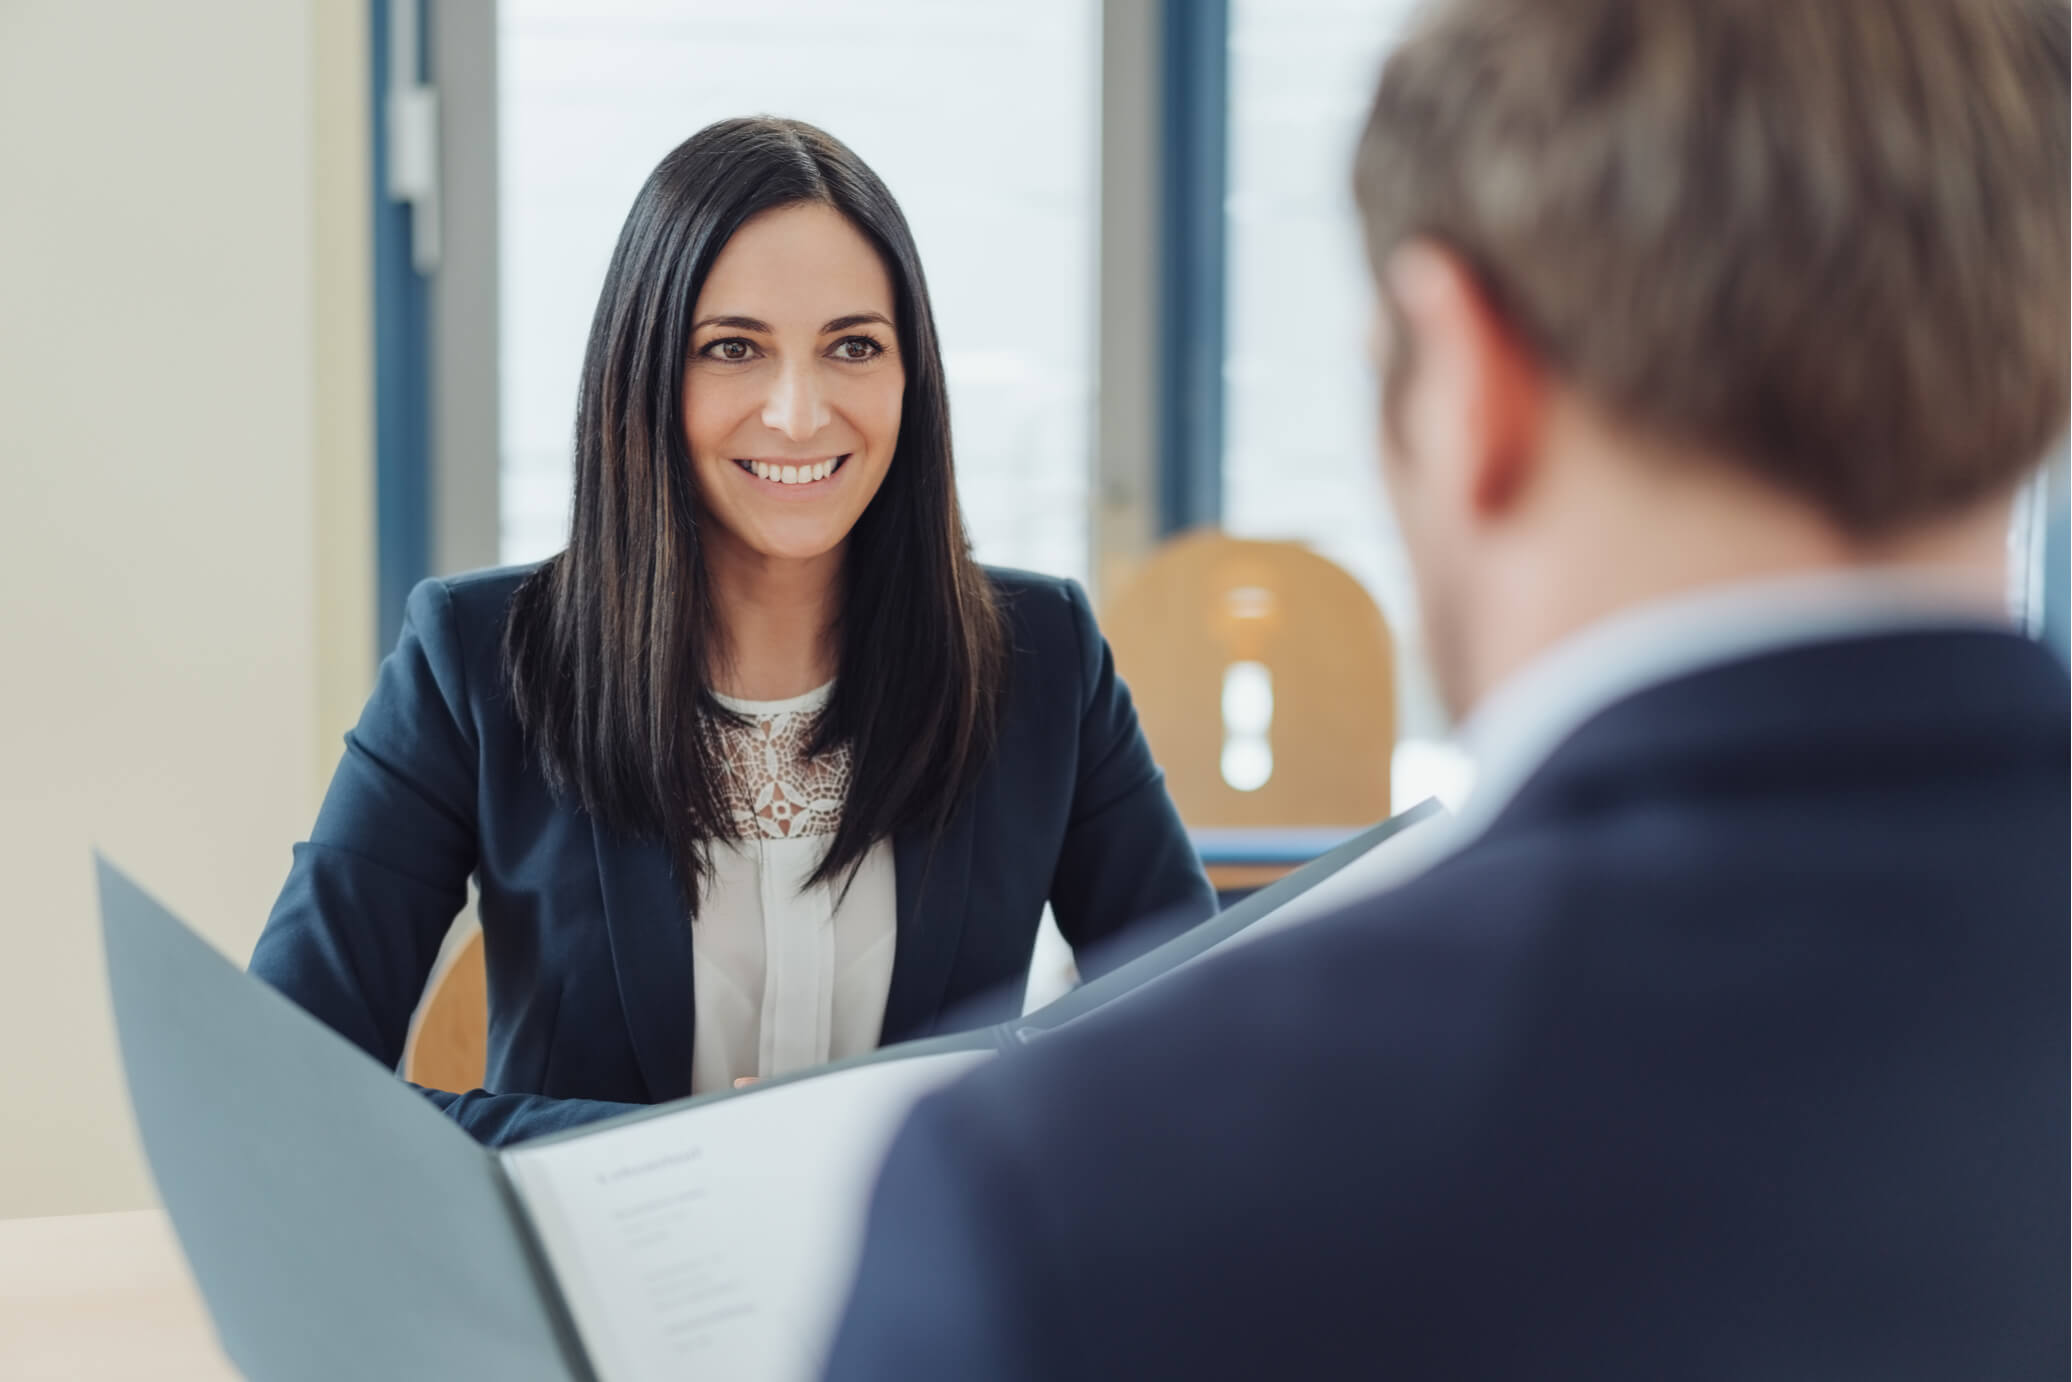 interview questions for an executive assistant